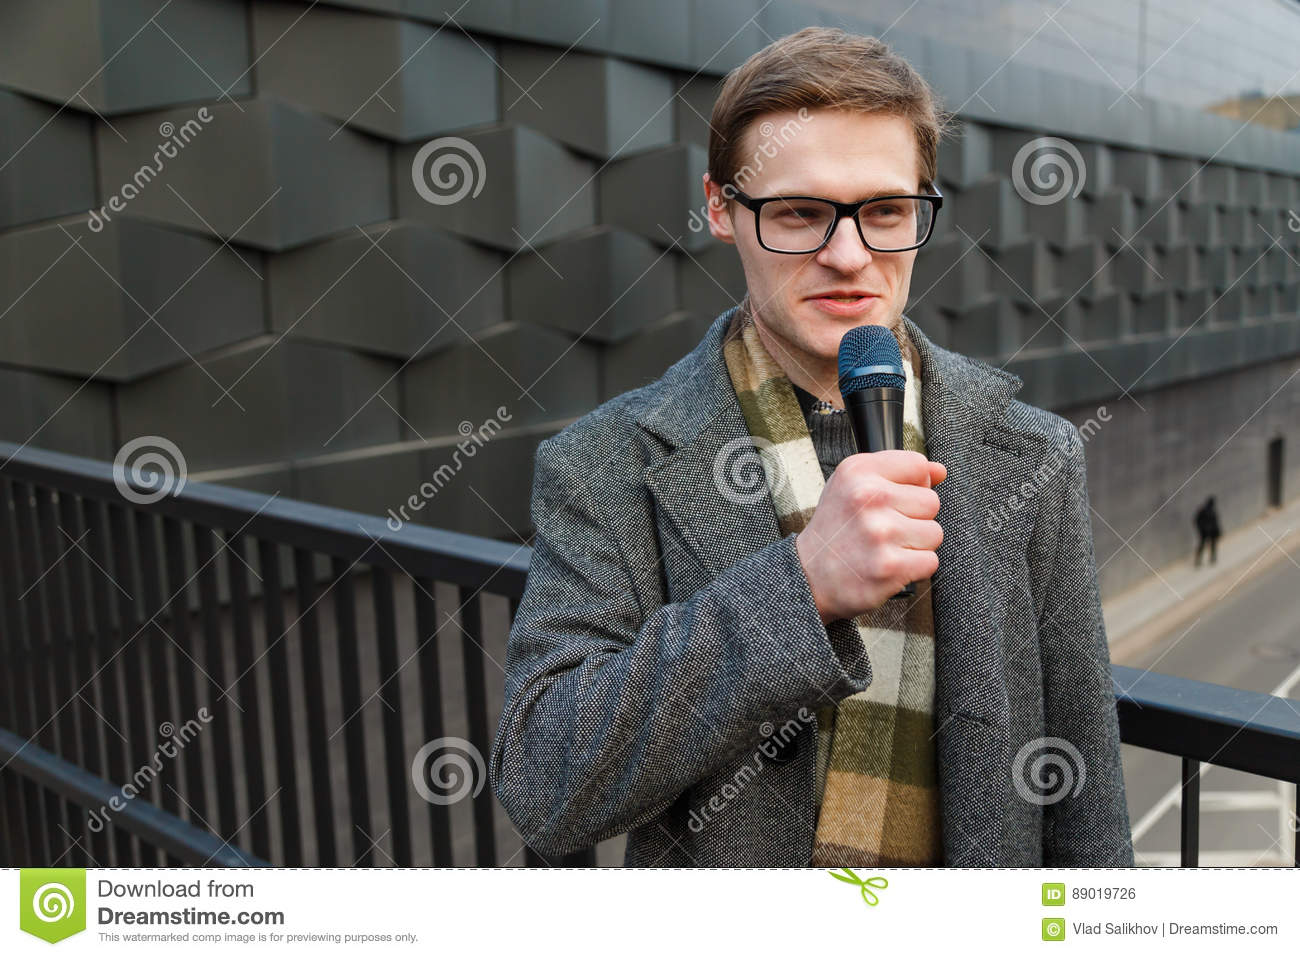 Professional news reporter in eyeglasses with microphone is broadcasting on the street. Fashion or business news